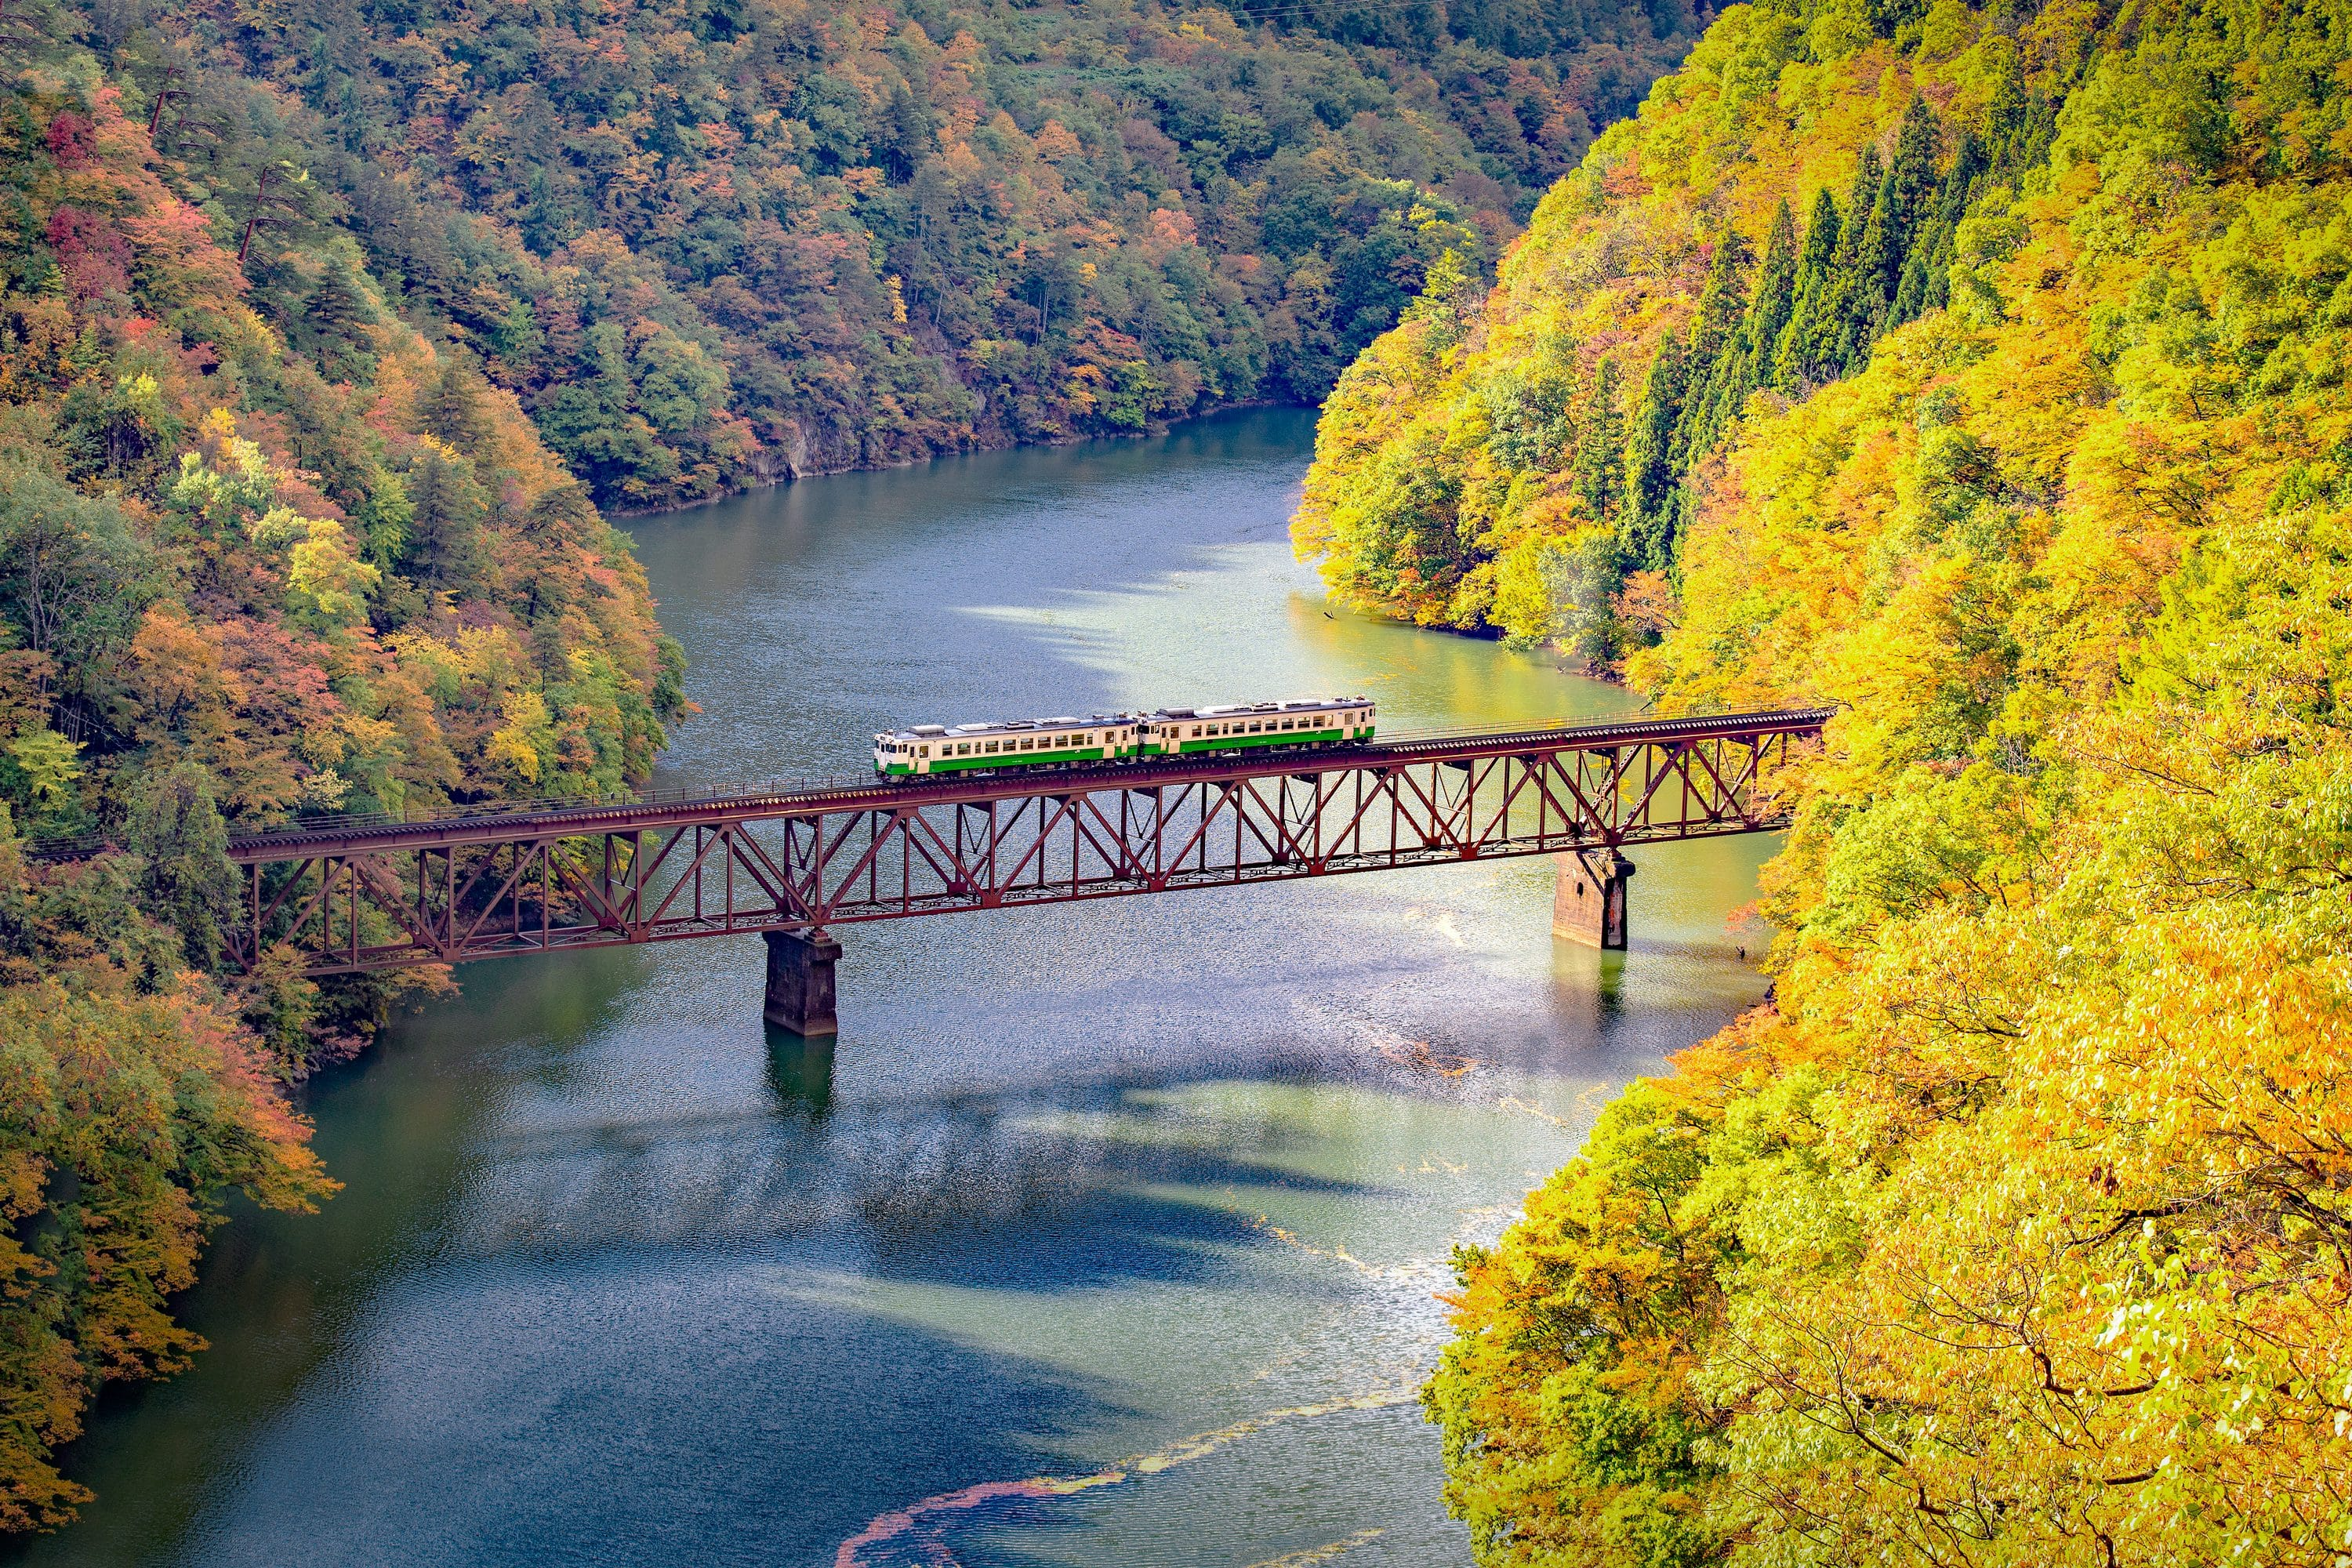 Train on a bridge over a river in Japan